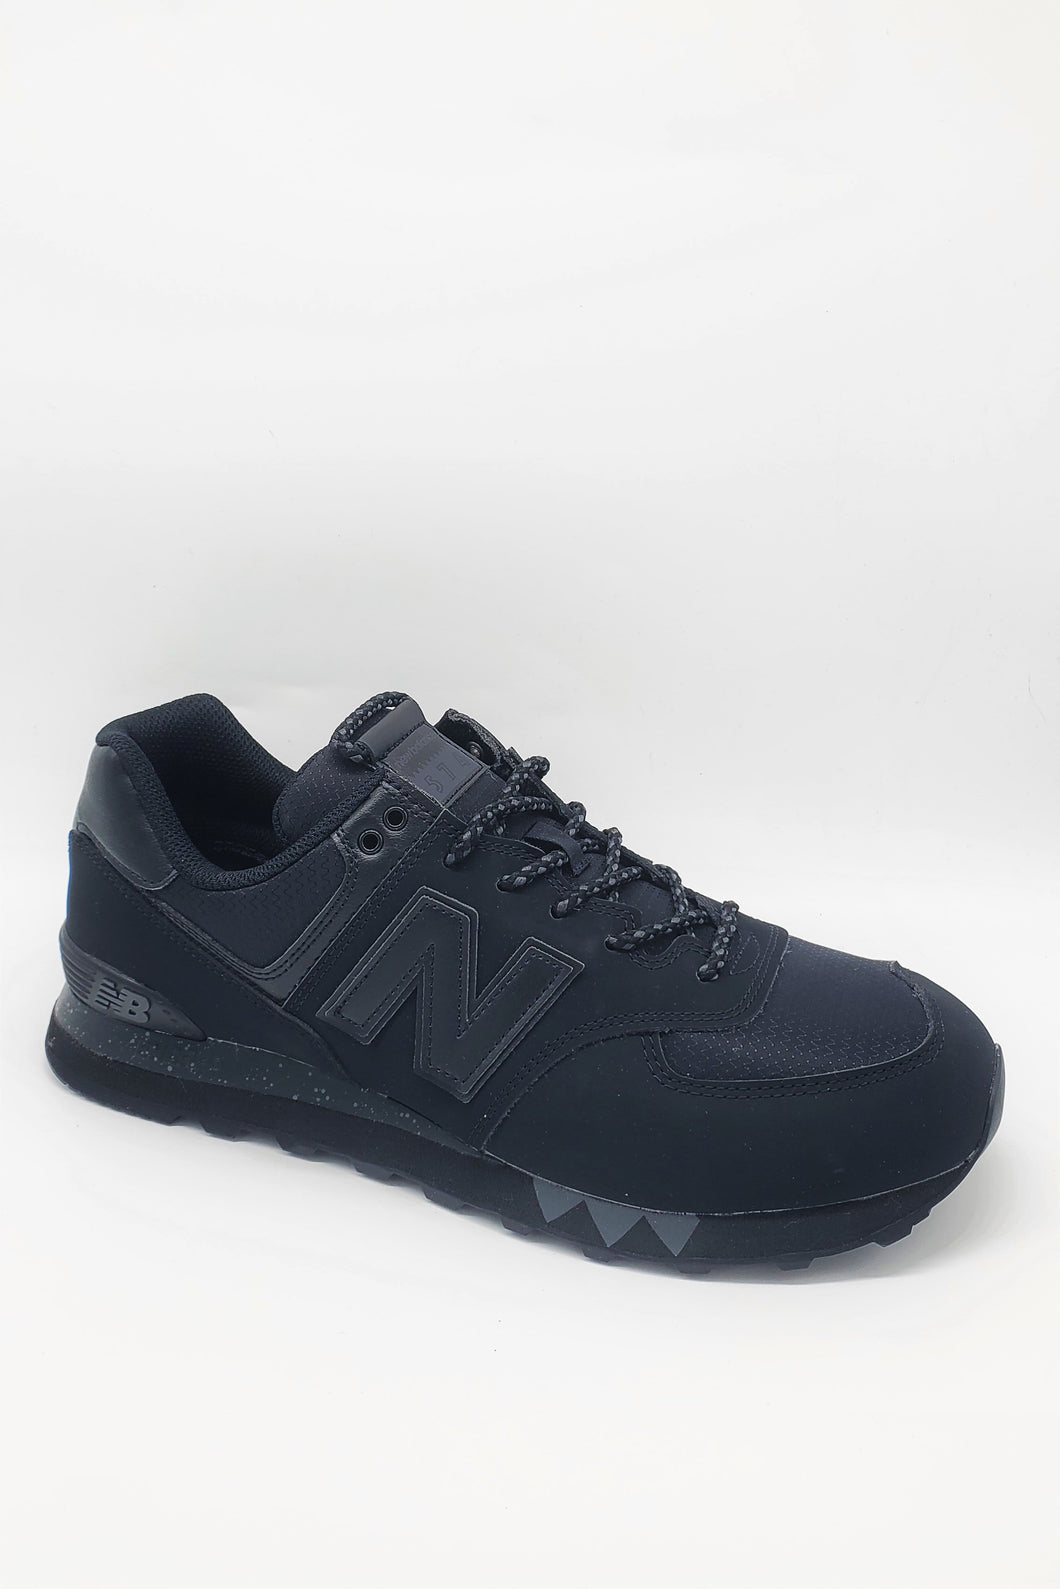 New Balance Mens ML574FV